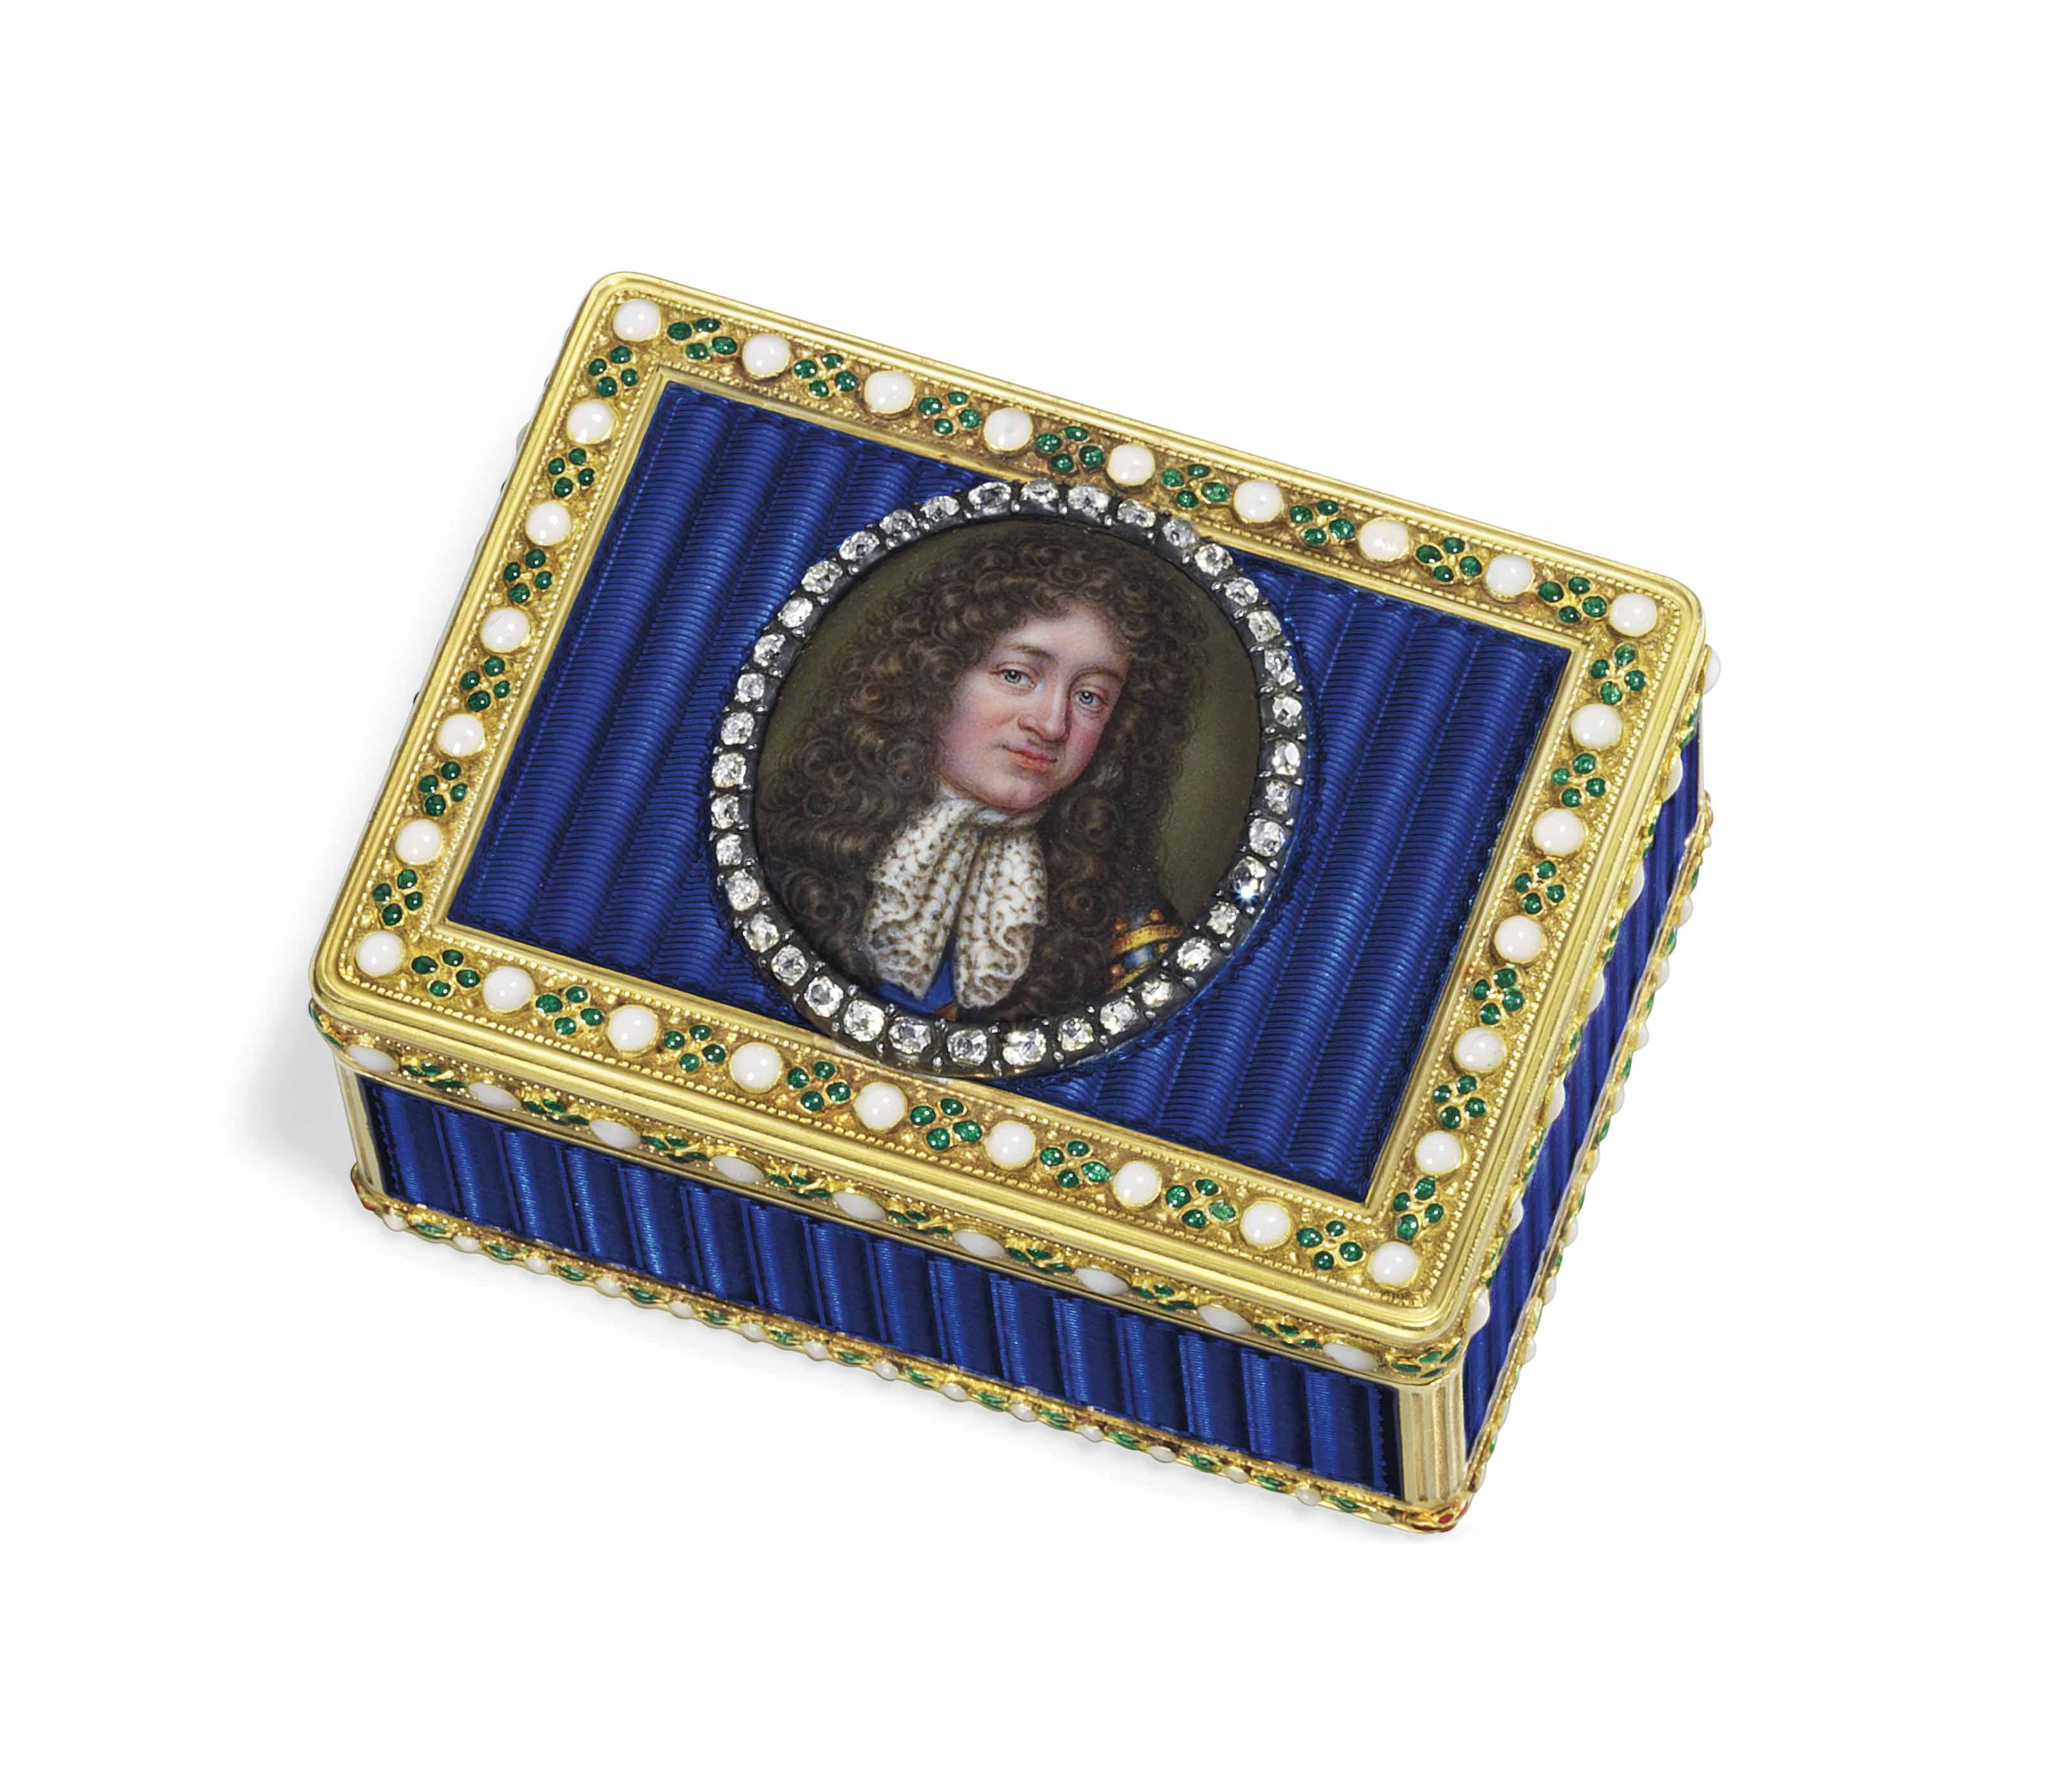 A SWISS OR GERMAN JEWELLED ENAMELLED GOLD SNUFF-BOX SET WITH AN ENAMEL MINIATURE